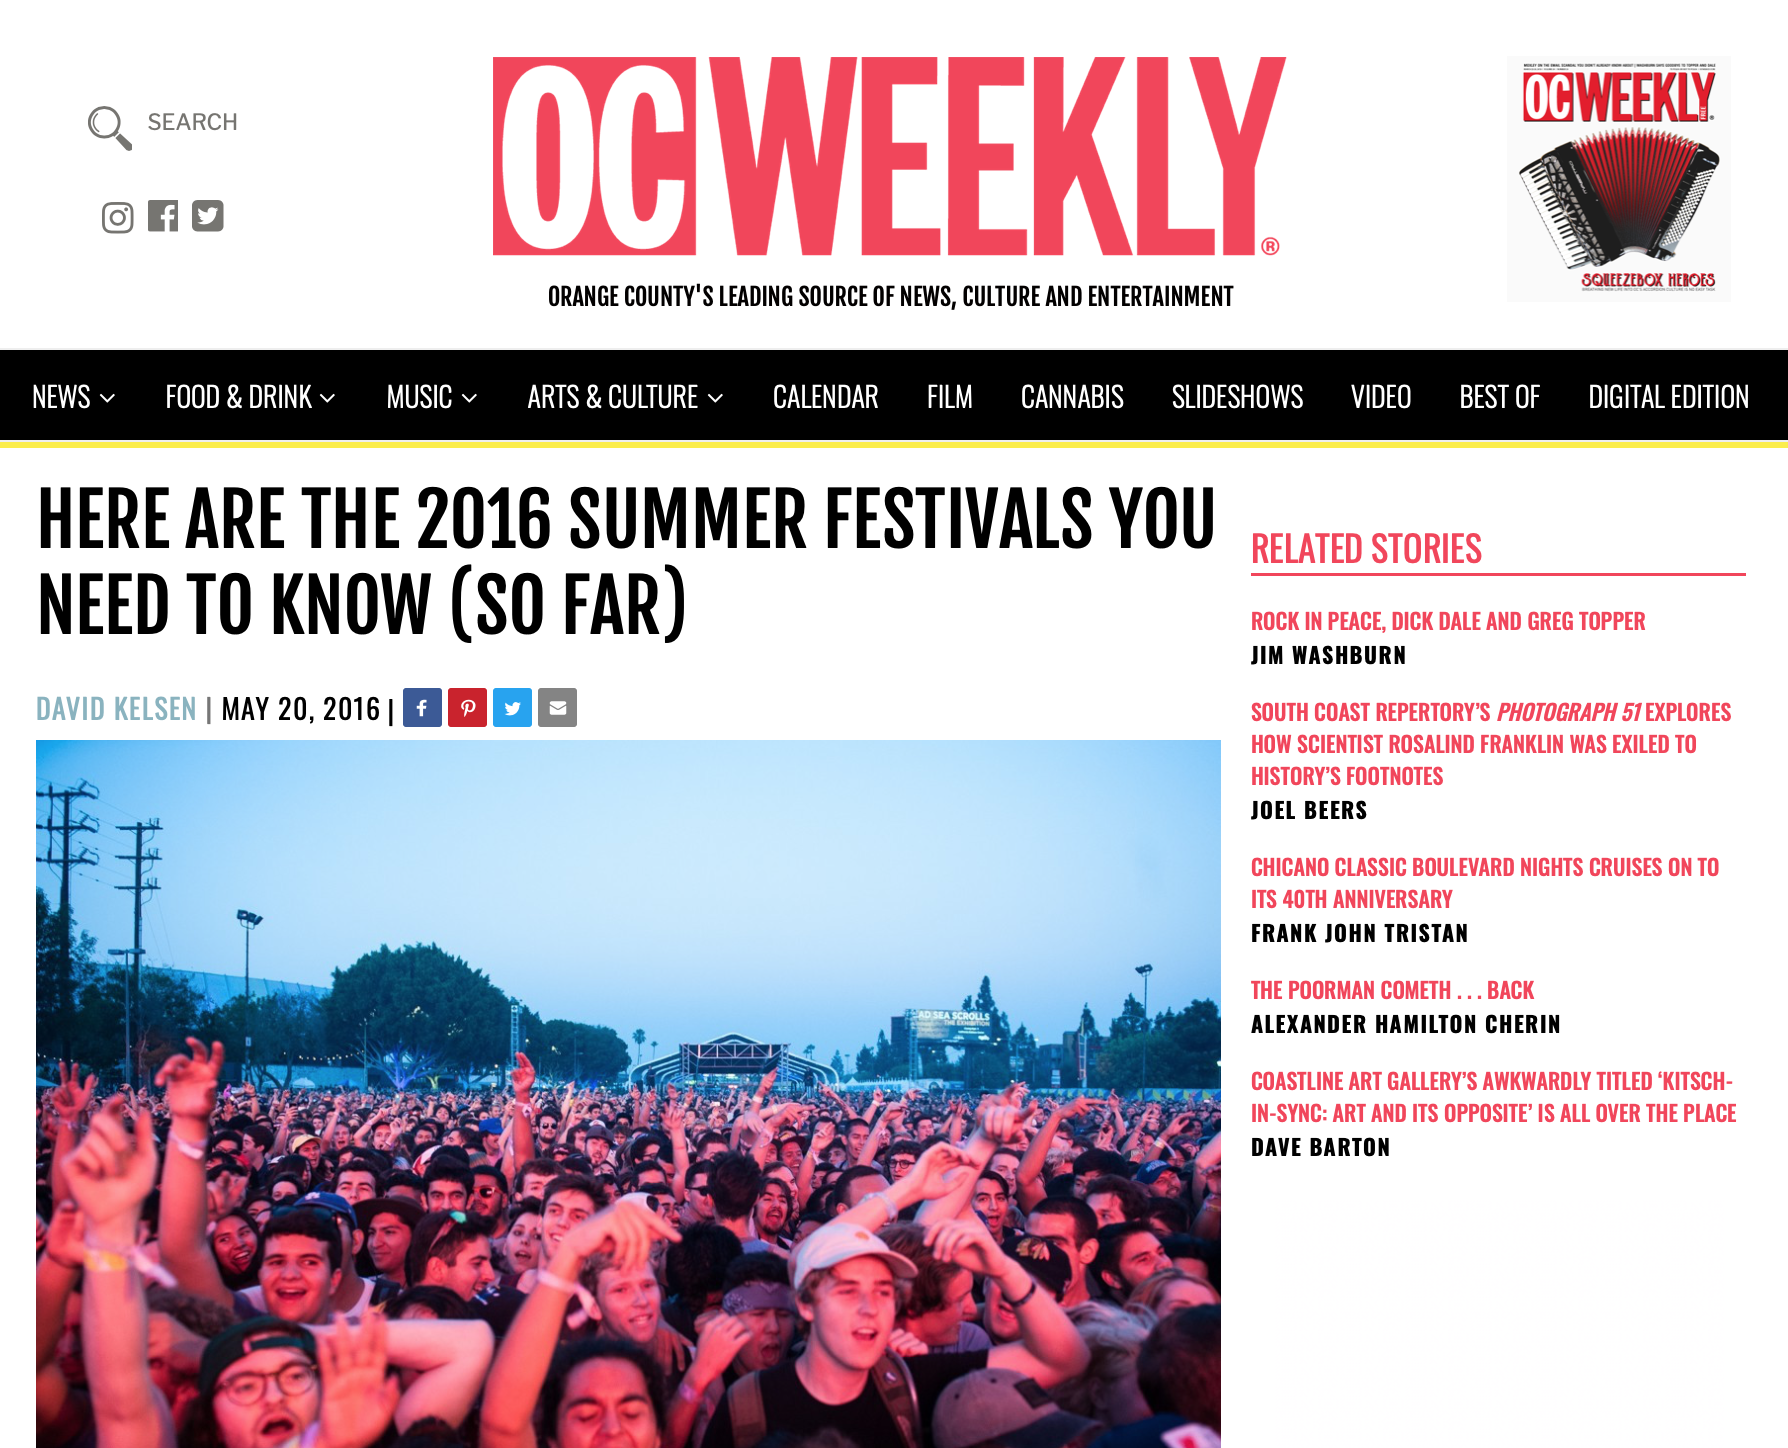 2016 SUMMER FESTIVALS YOU NEED TO KNOW - OC Weekly -